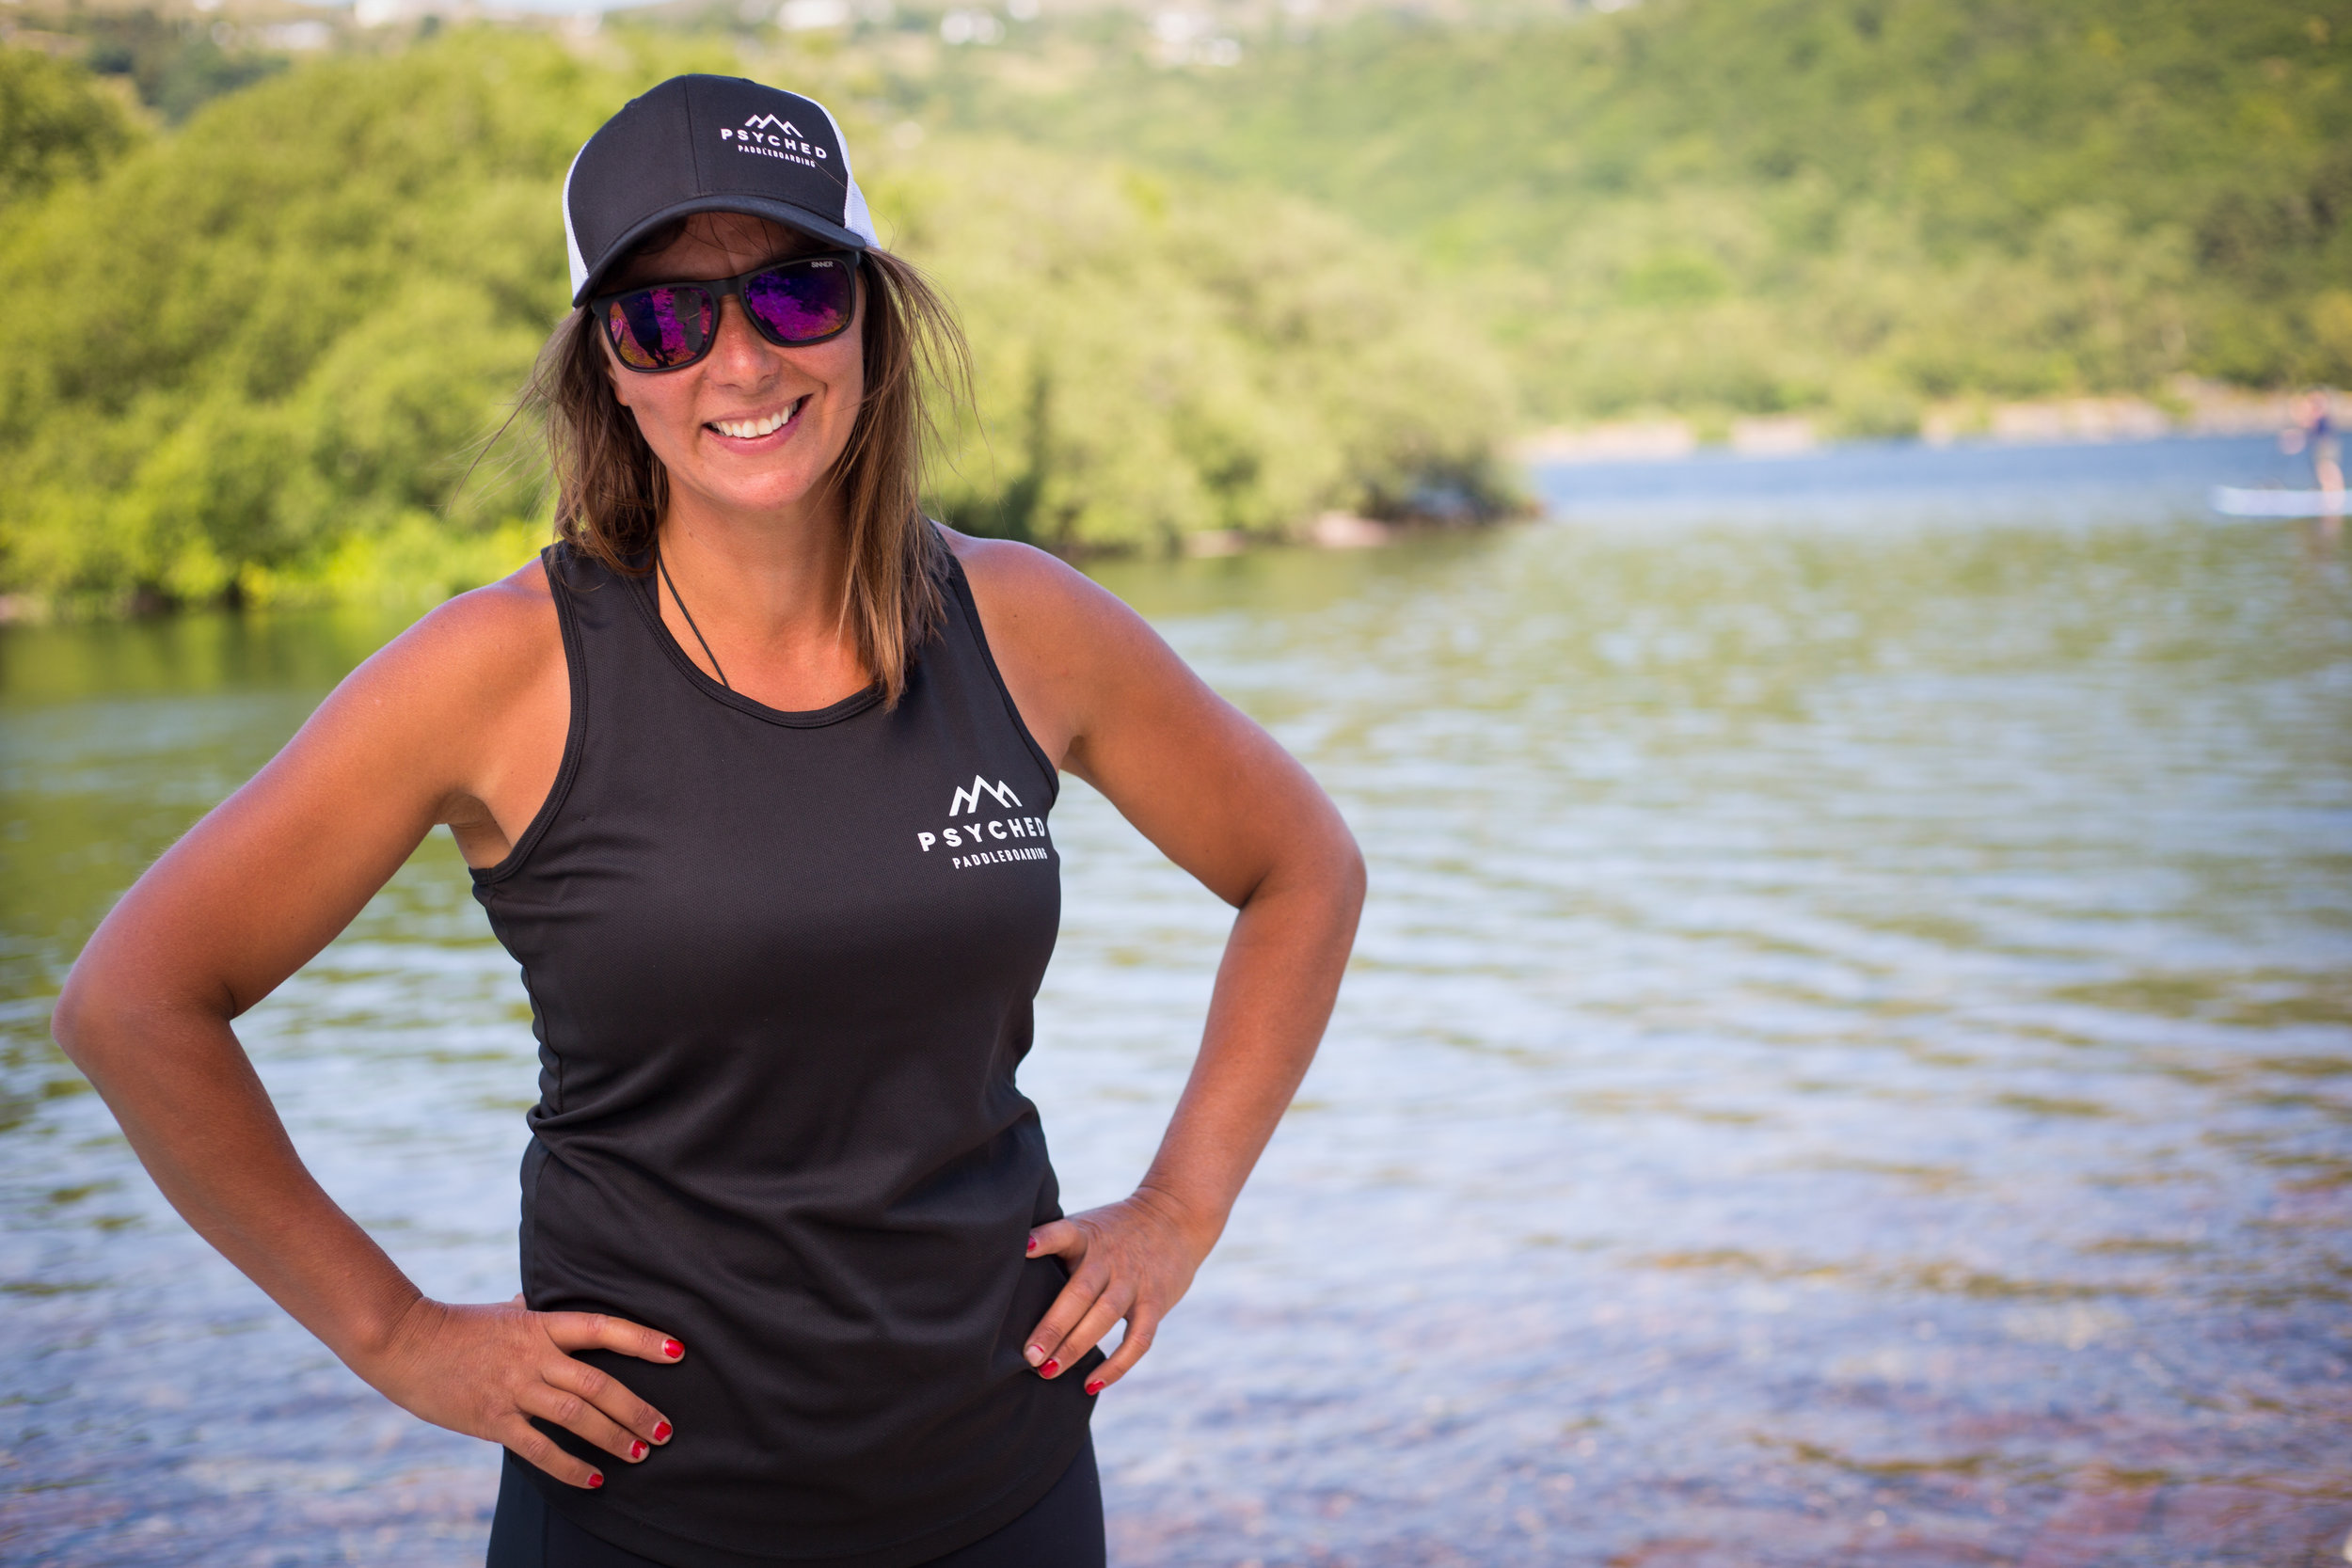 Sian Sykes, Founder of Psyched Paddleboarding